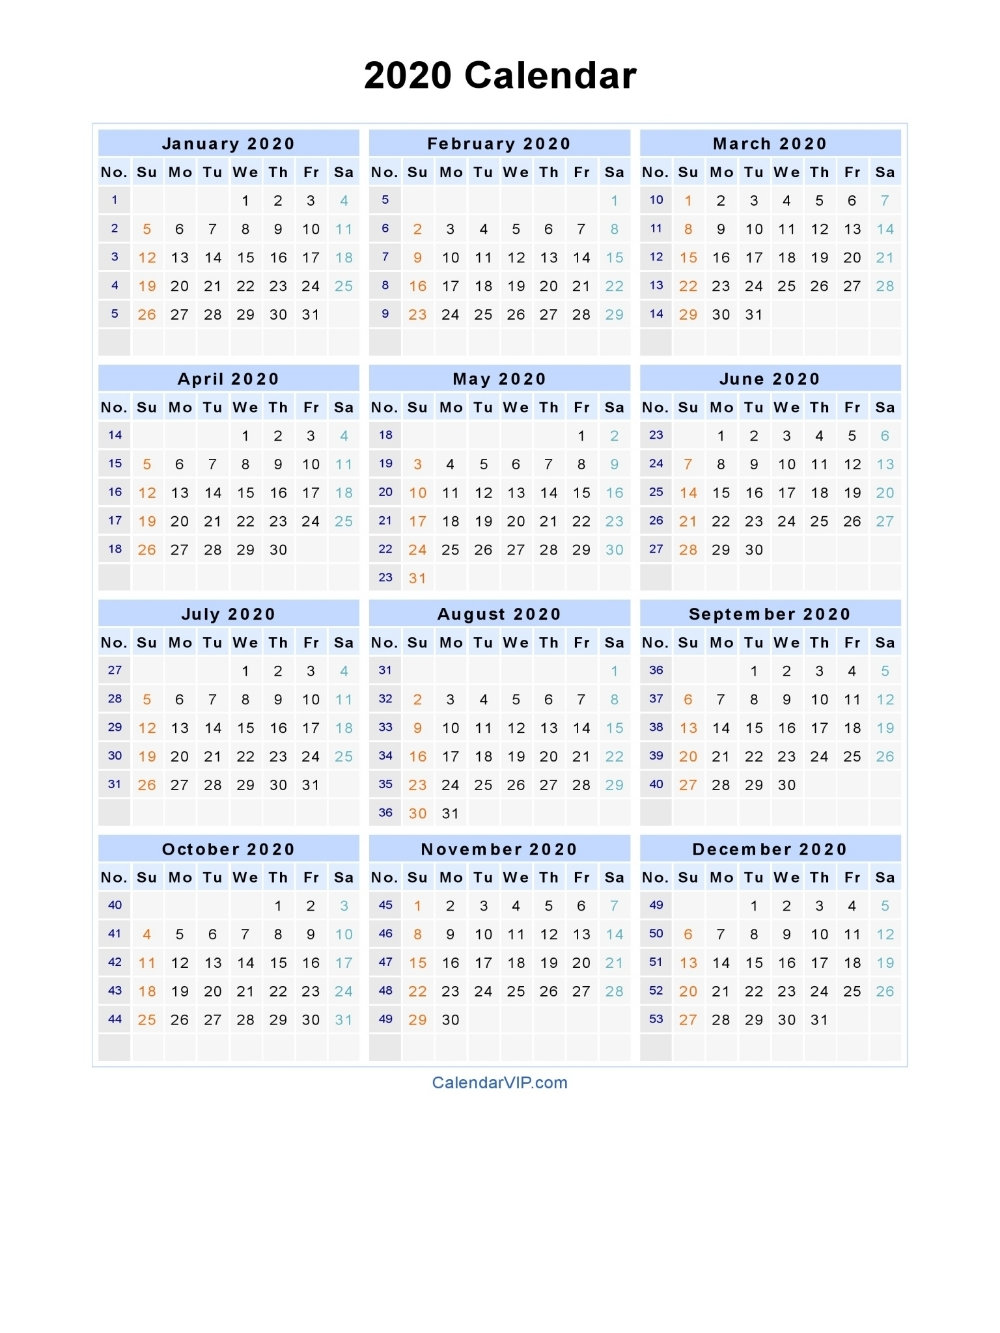 2020 Calendar - Blank Printable Calendar Template In Pdf with regard to Free Word 2020 Calendar Year At A Glance